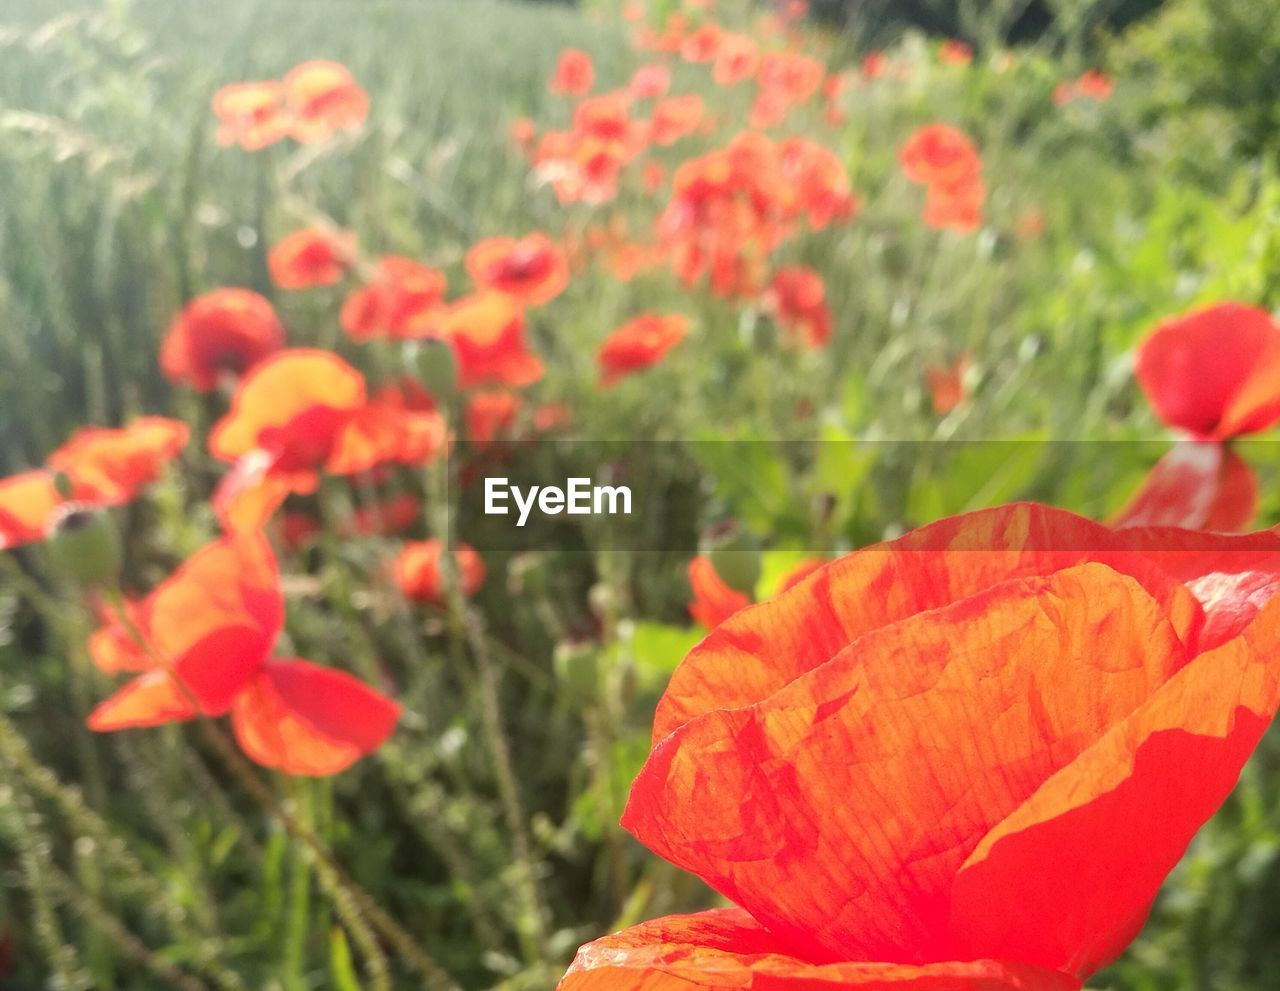 CLOSE-UP OF POPPIES BLOOMING OUTDOORS